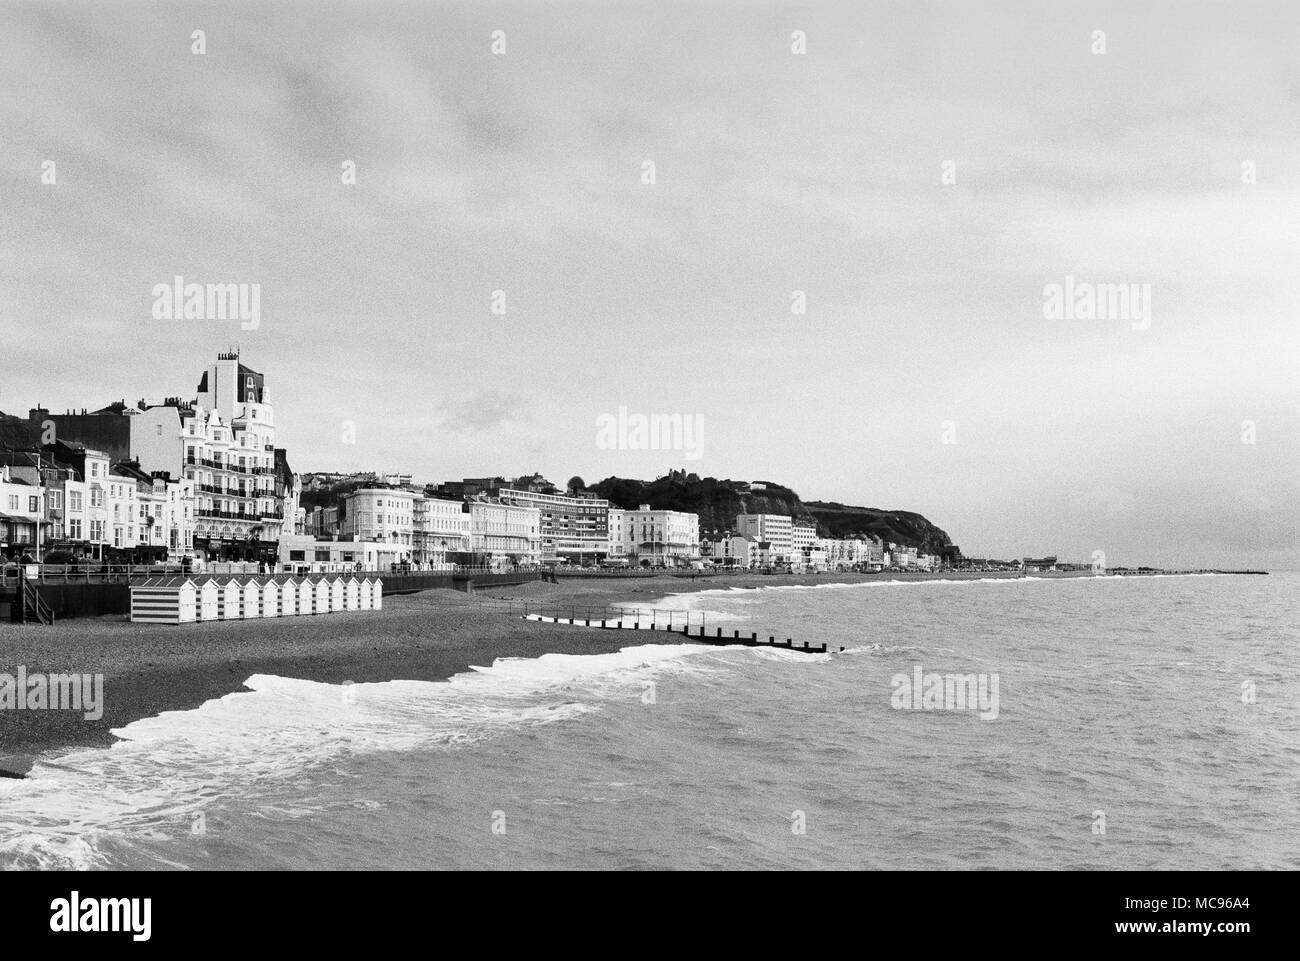 Hastings on the Sussex Coast, UK, looking East from the pier - Stock Image